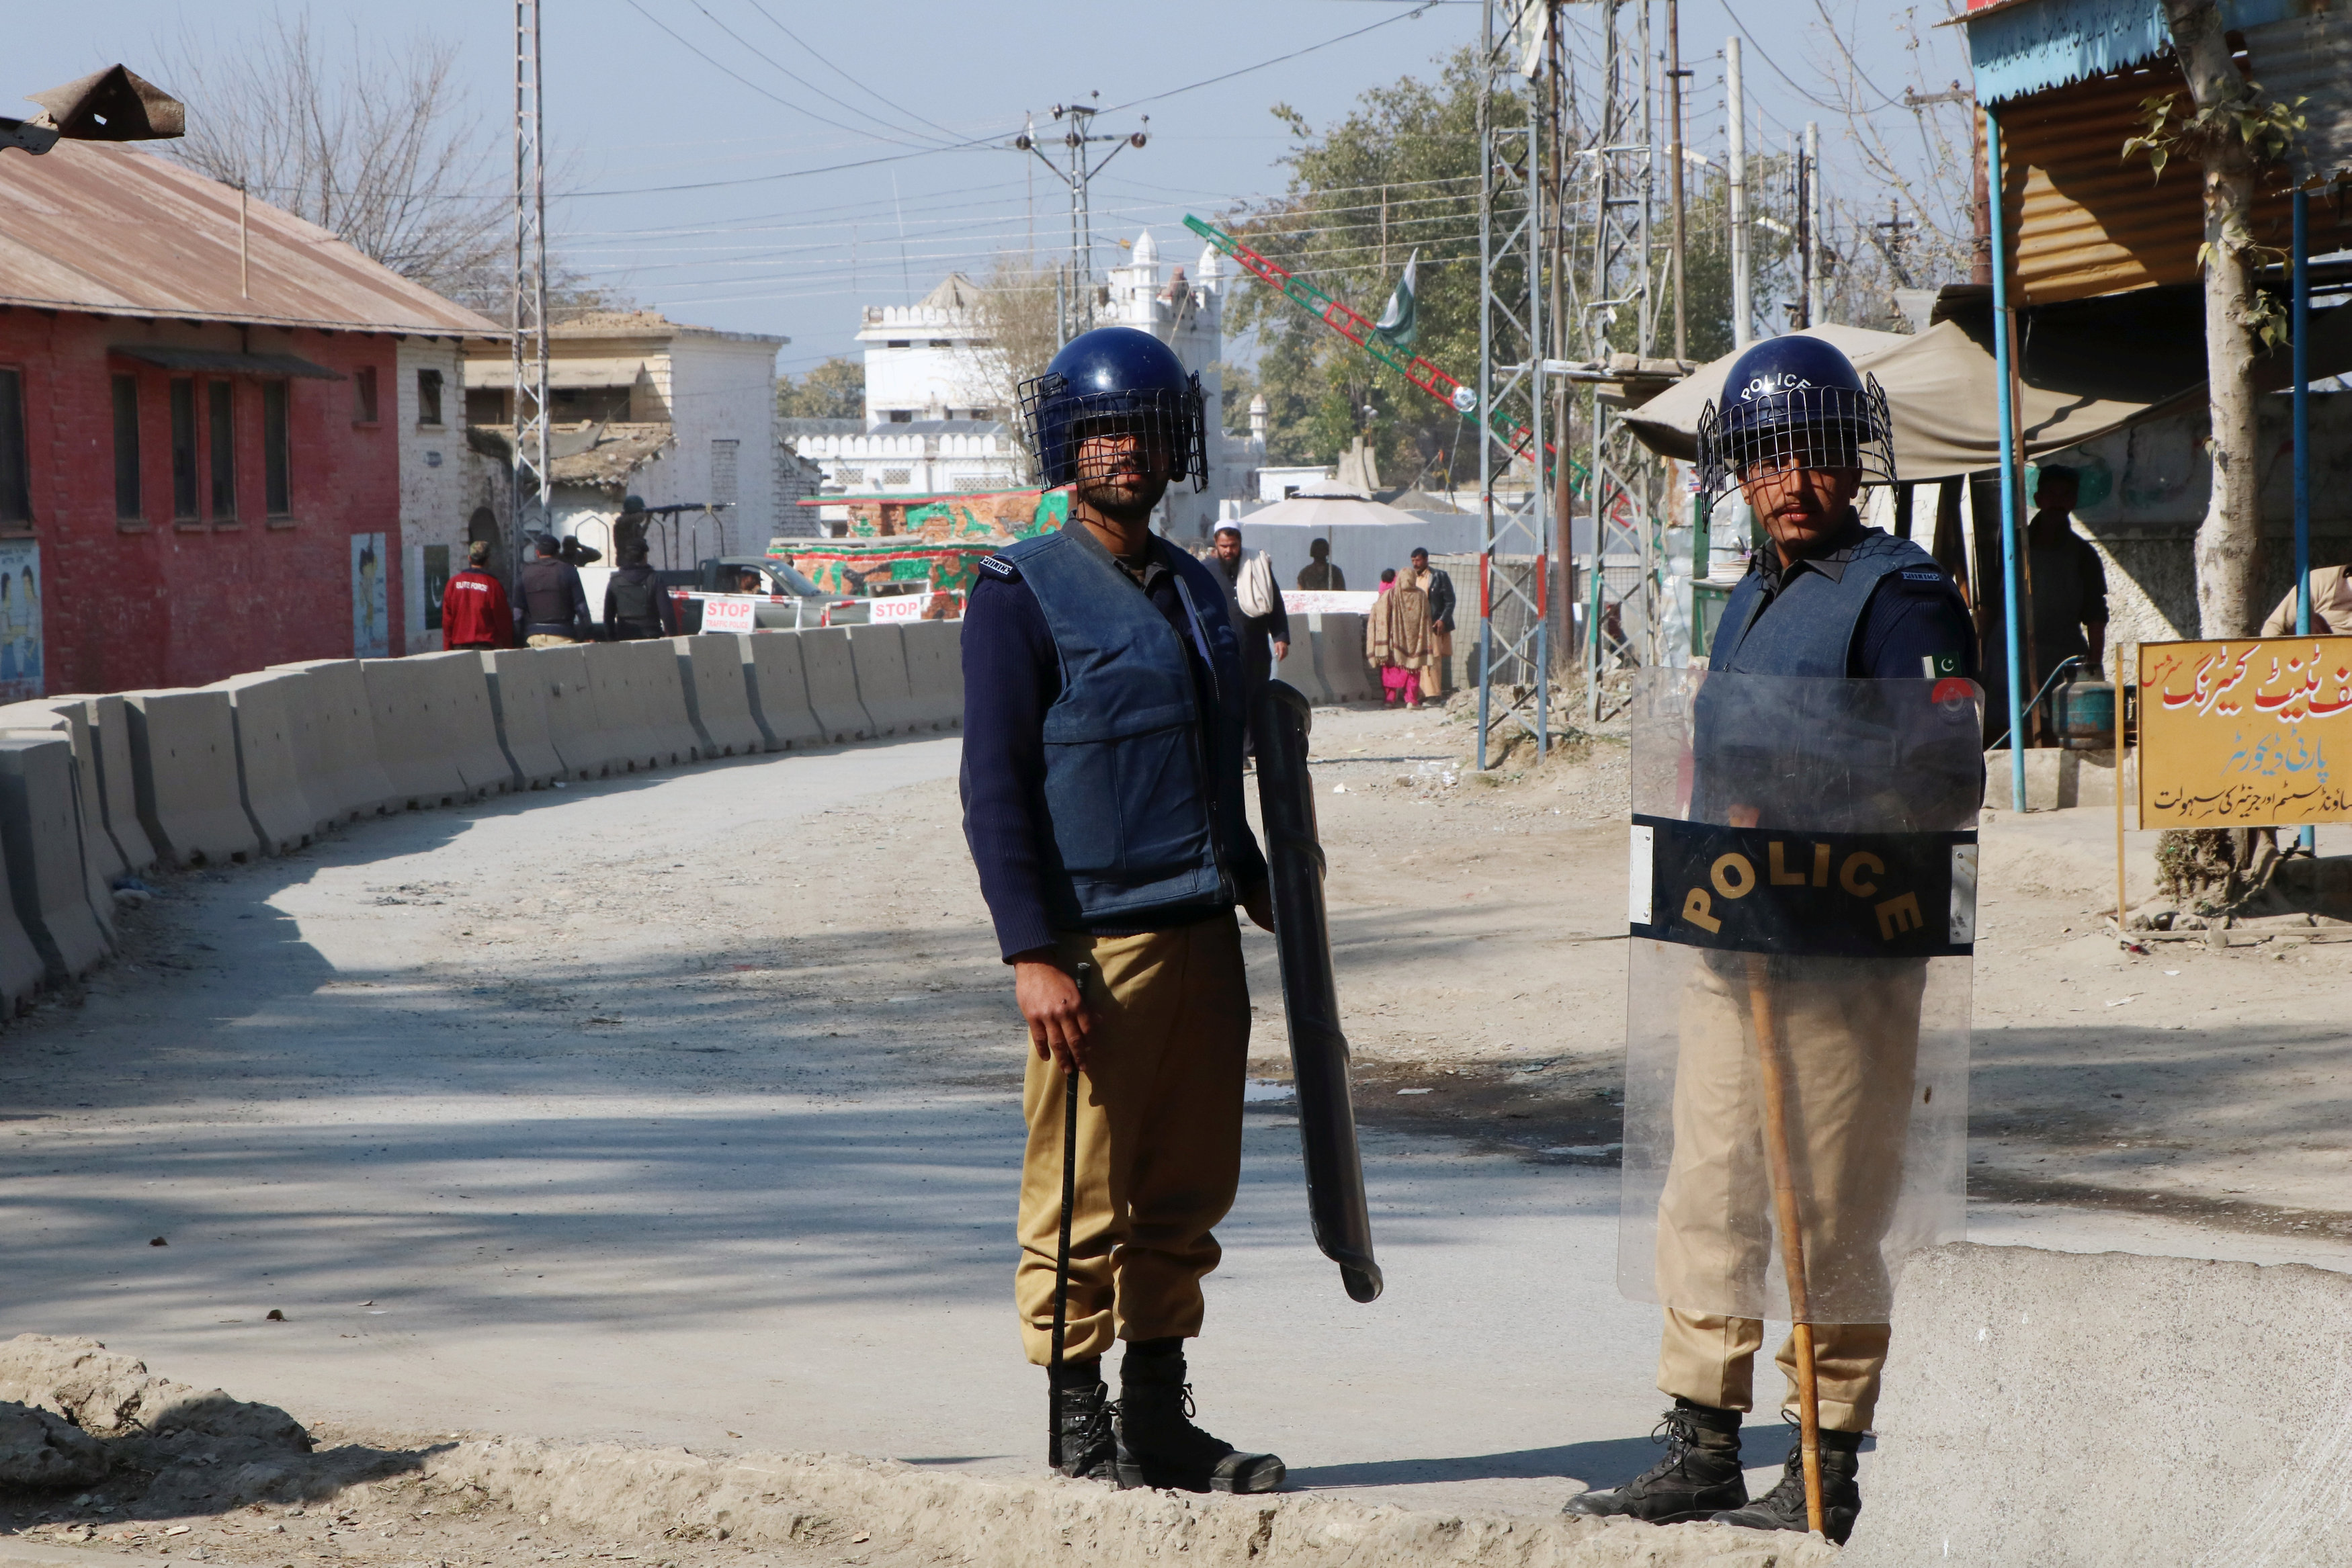 Policemen keep guard near the central prison where a court convicted 31people over the campus lynching of a university student last year who was falsely accused of blasphemy, and sentenced one of them to death, in Haripur, Pakistan February 7, 2018.